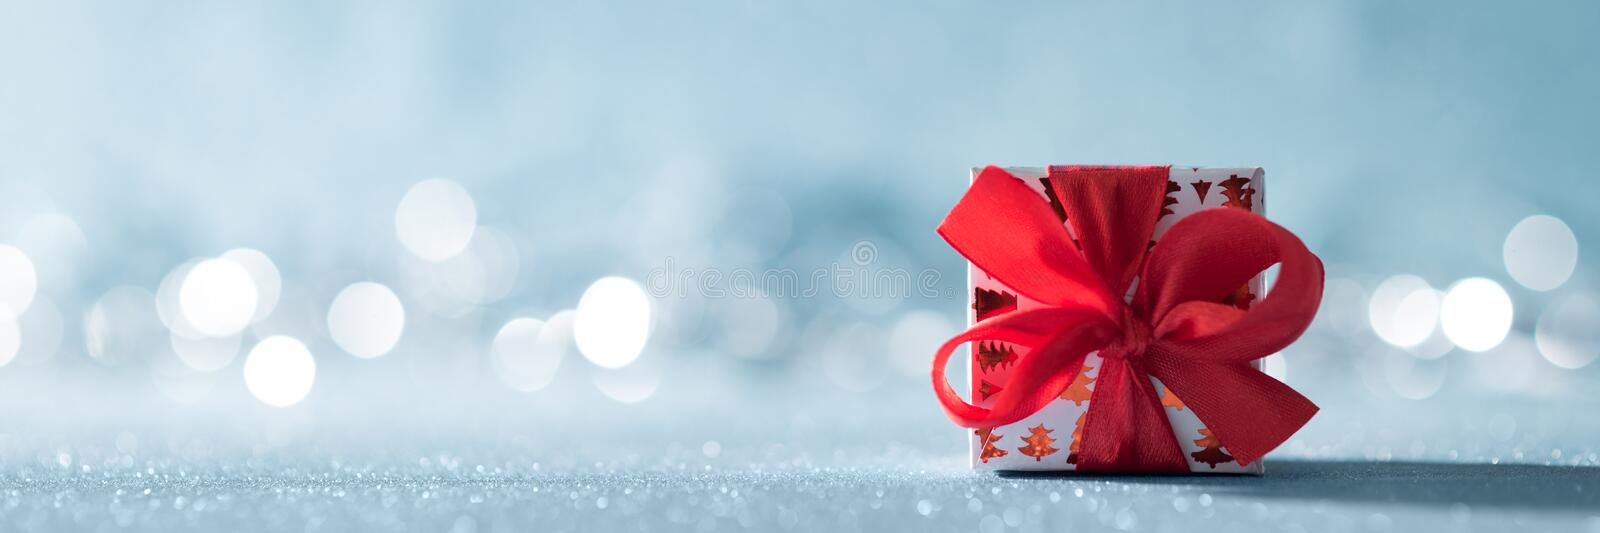 Beautiful red christmas gift with large bow on shiny blue background and defocused christmas lights in the background. royalty free stock images